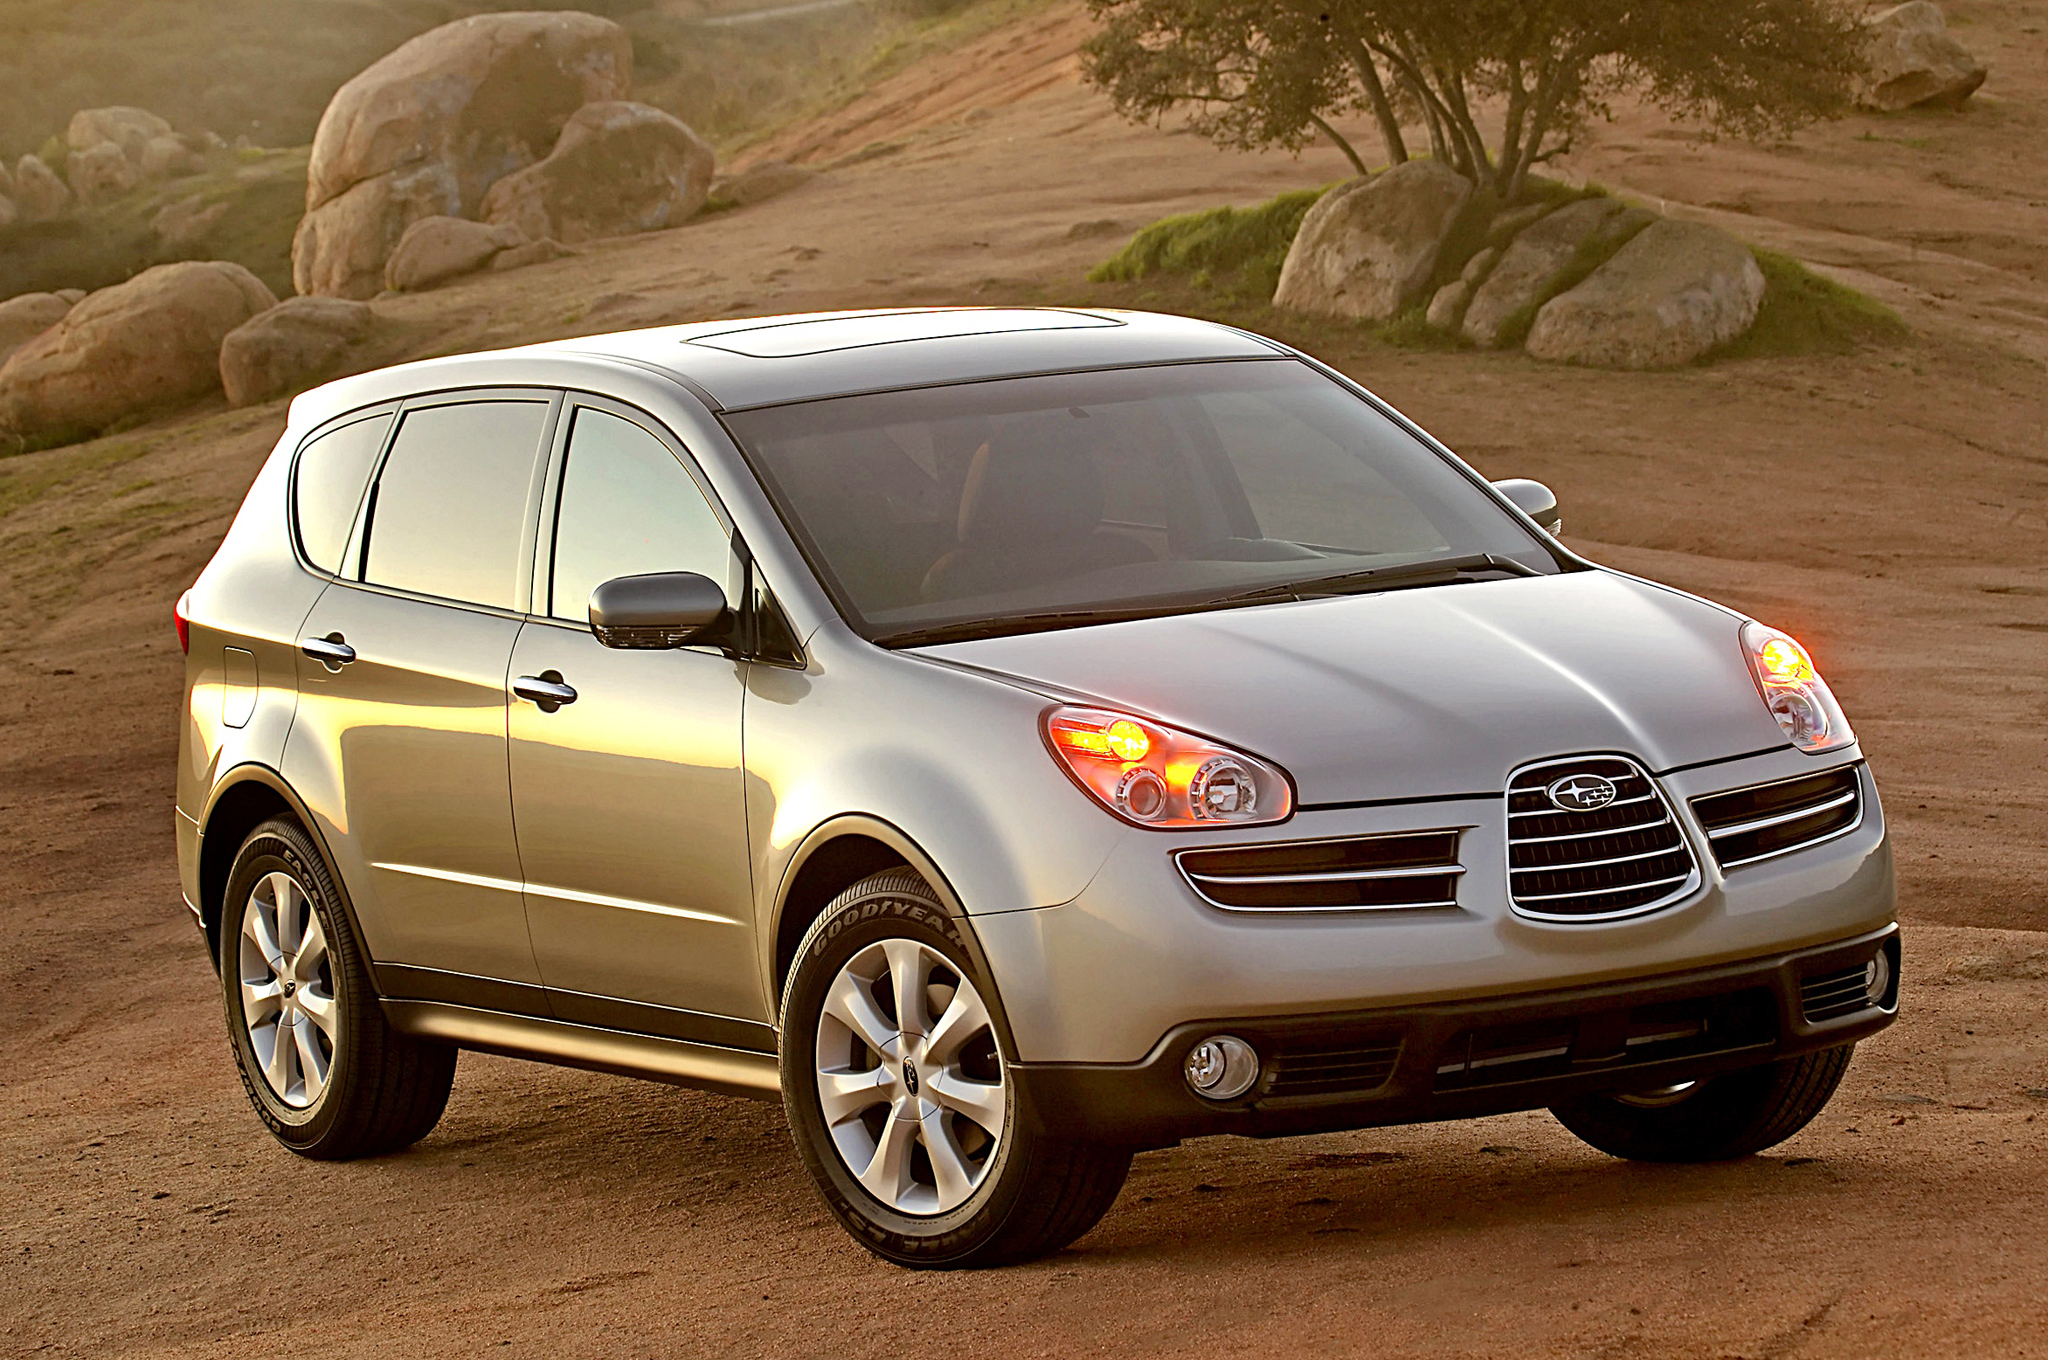 Subaru Tribeca is Gone: 7 Other Ugly Cars That Didn't Catch On